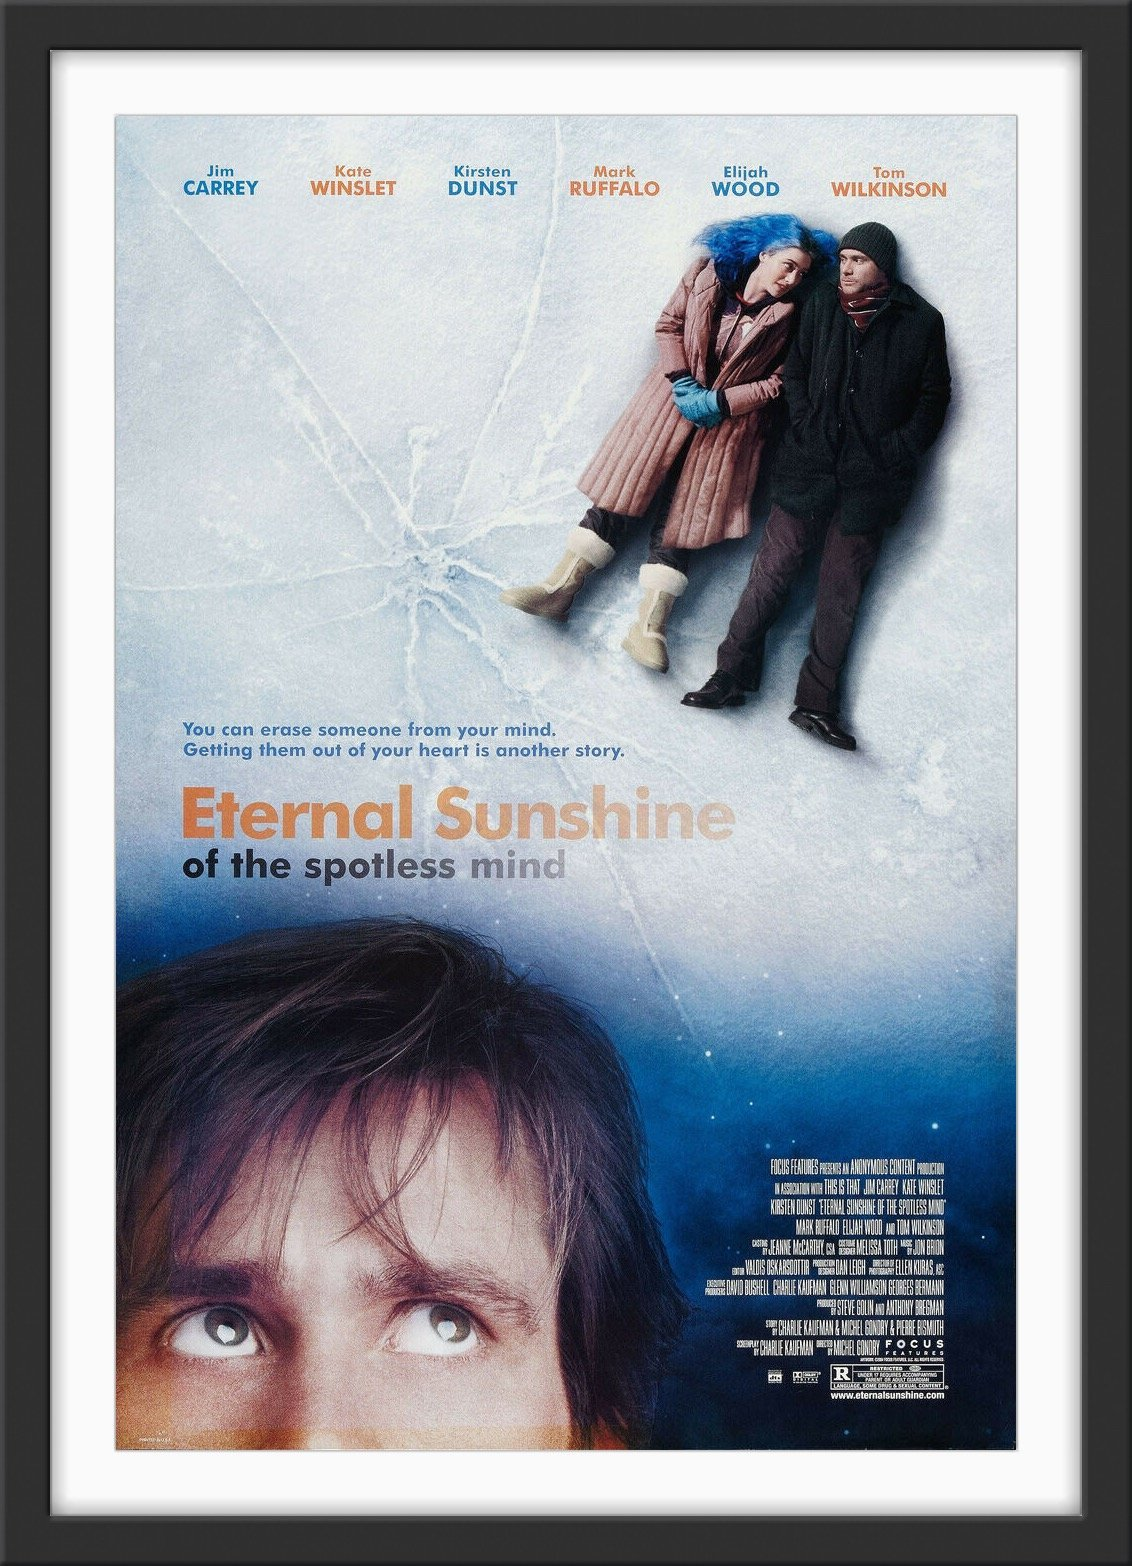 An original movie poster for the film Eternal Sunshine of the Spotless Mind